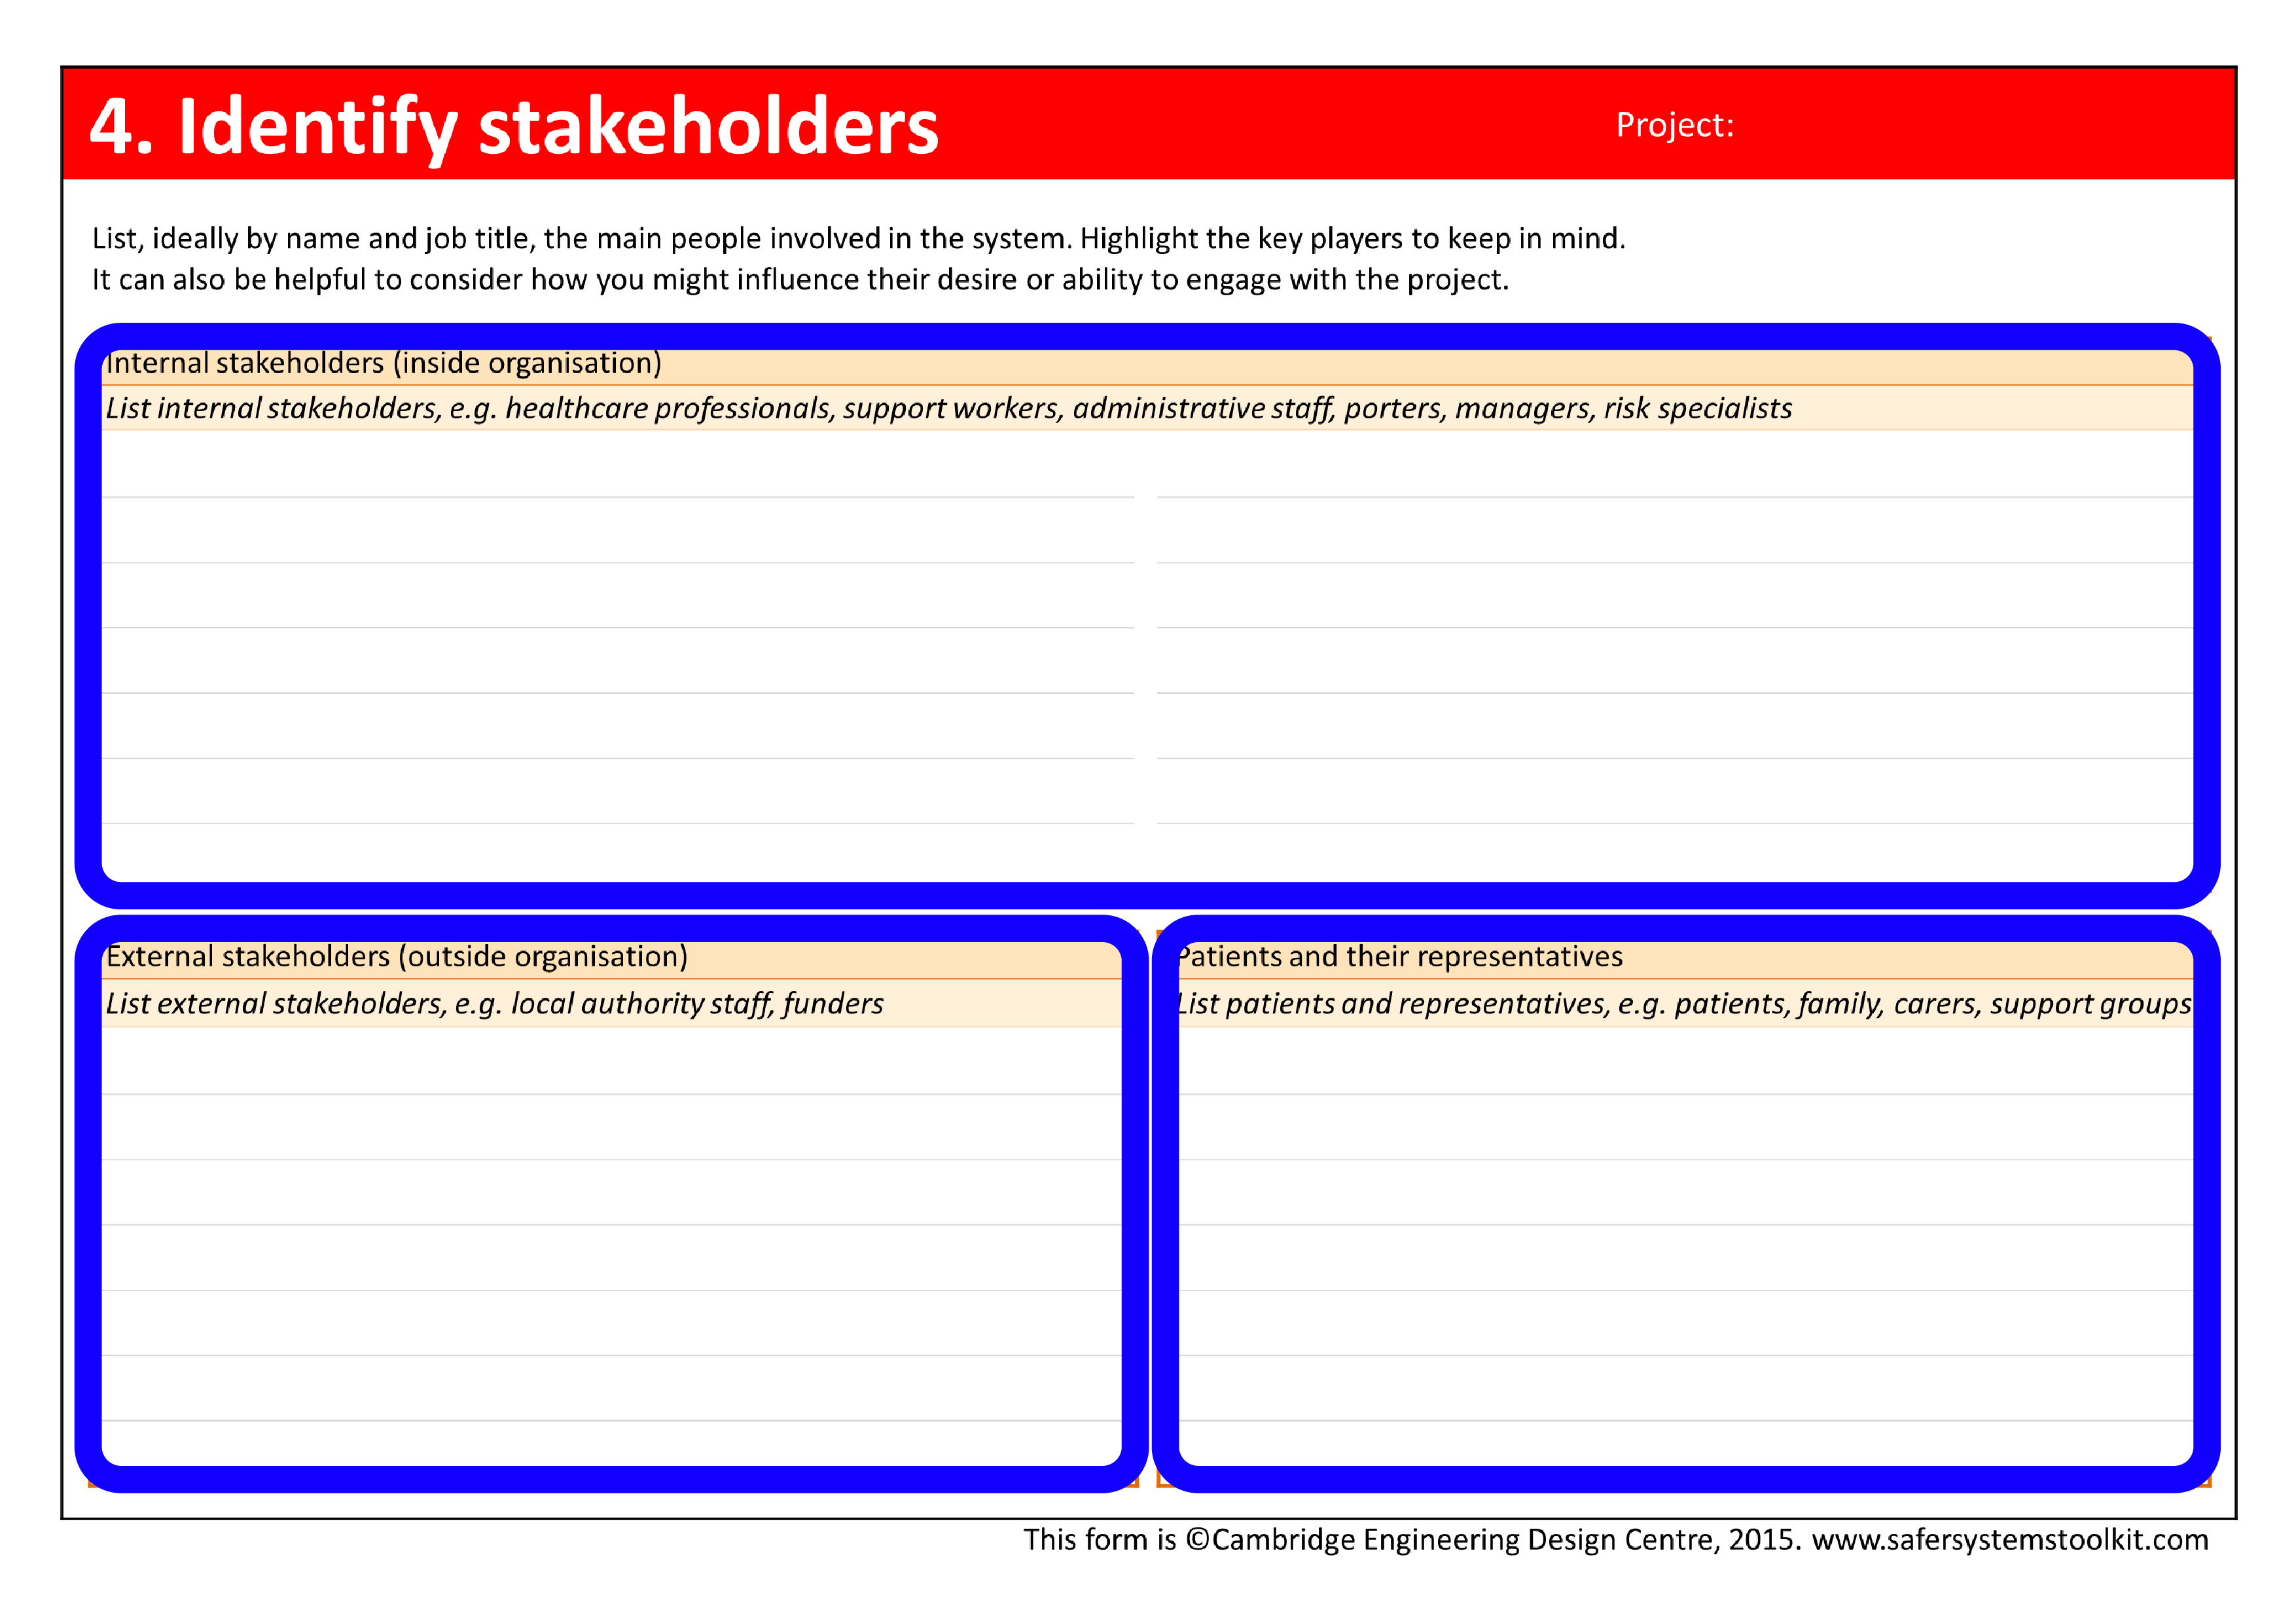 Screenshot of Identify stakeholders page of the assessment form